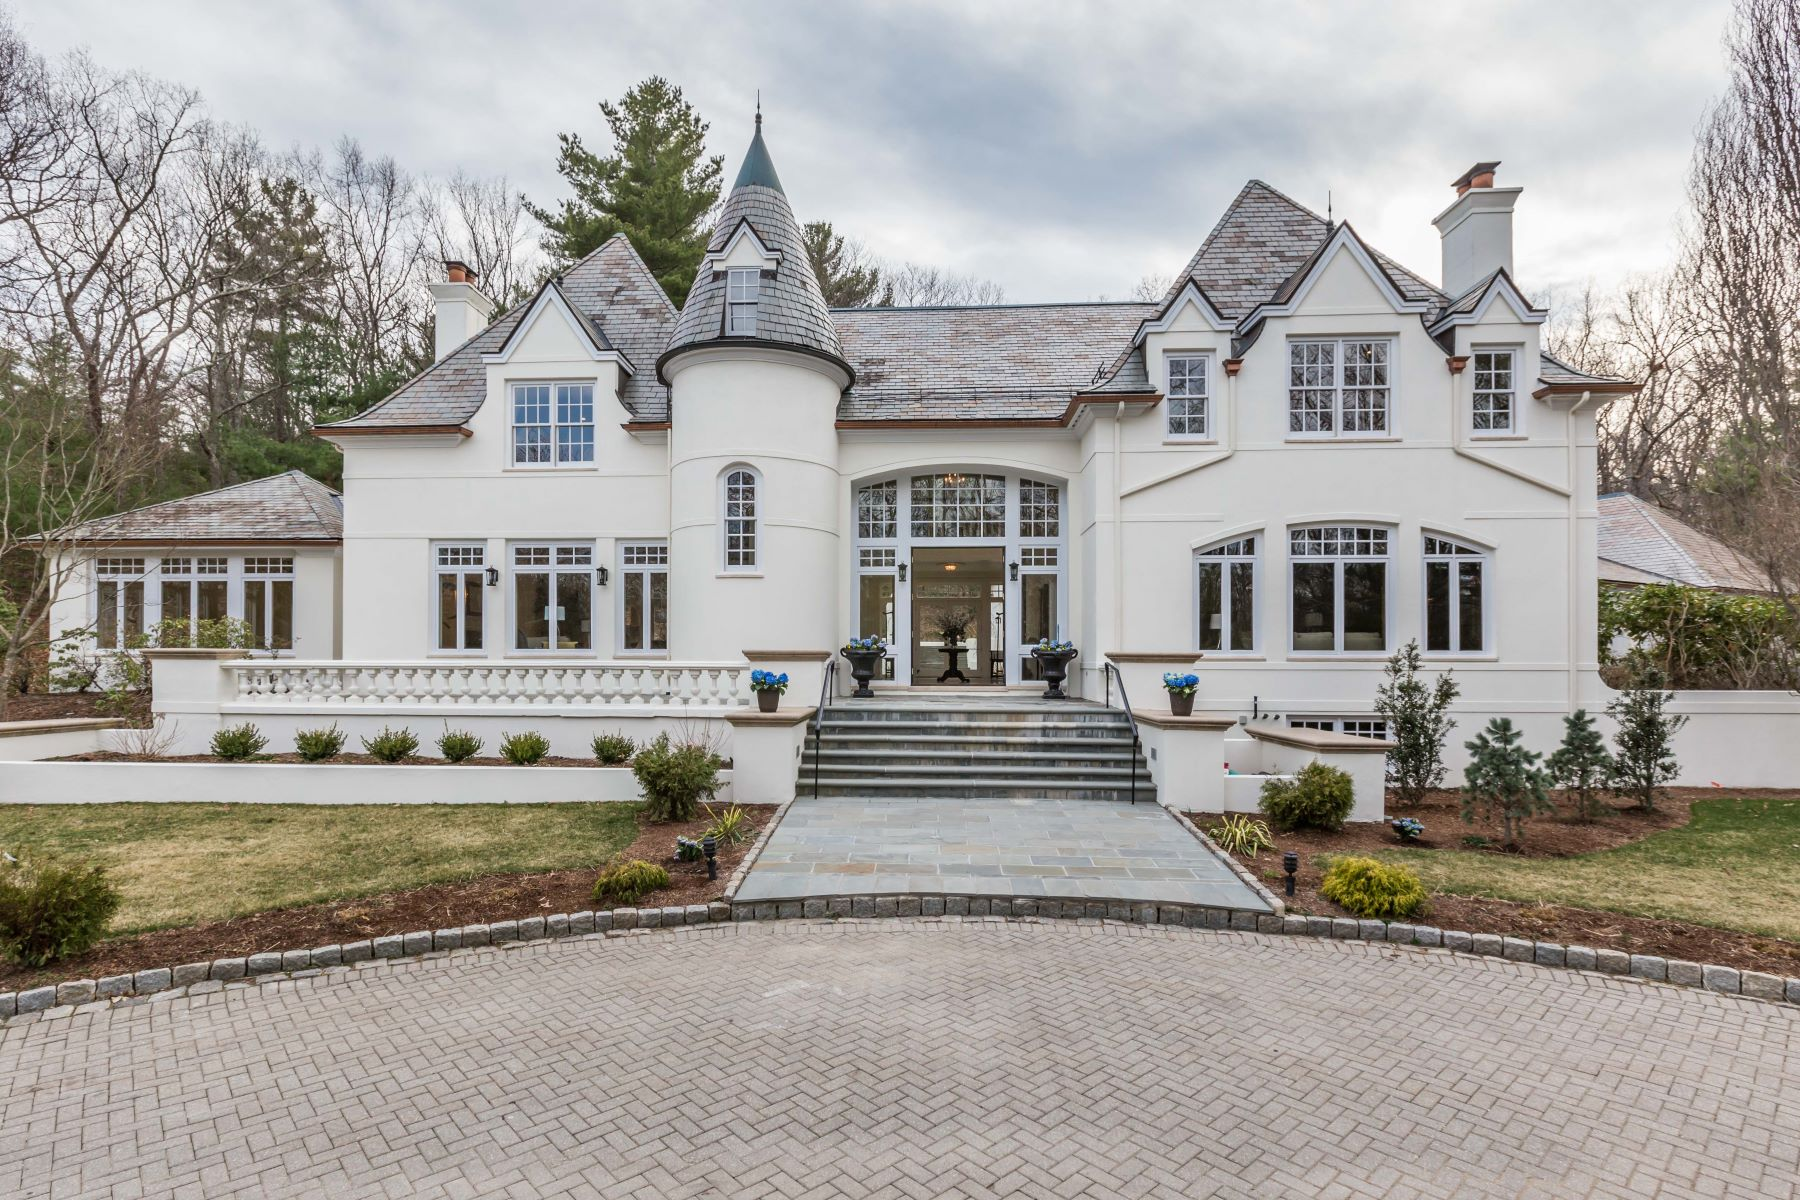 Single Family Home for Sale at Stunning Newly Renovated Wellesley Estate 190 Pond Road Wellesley, 02482 United States